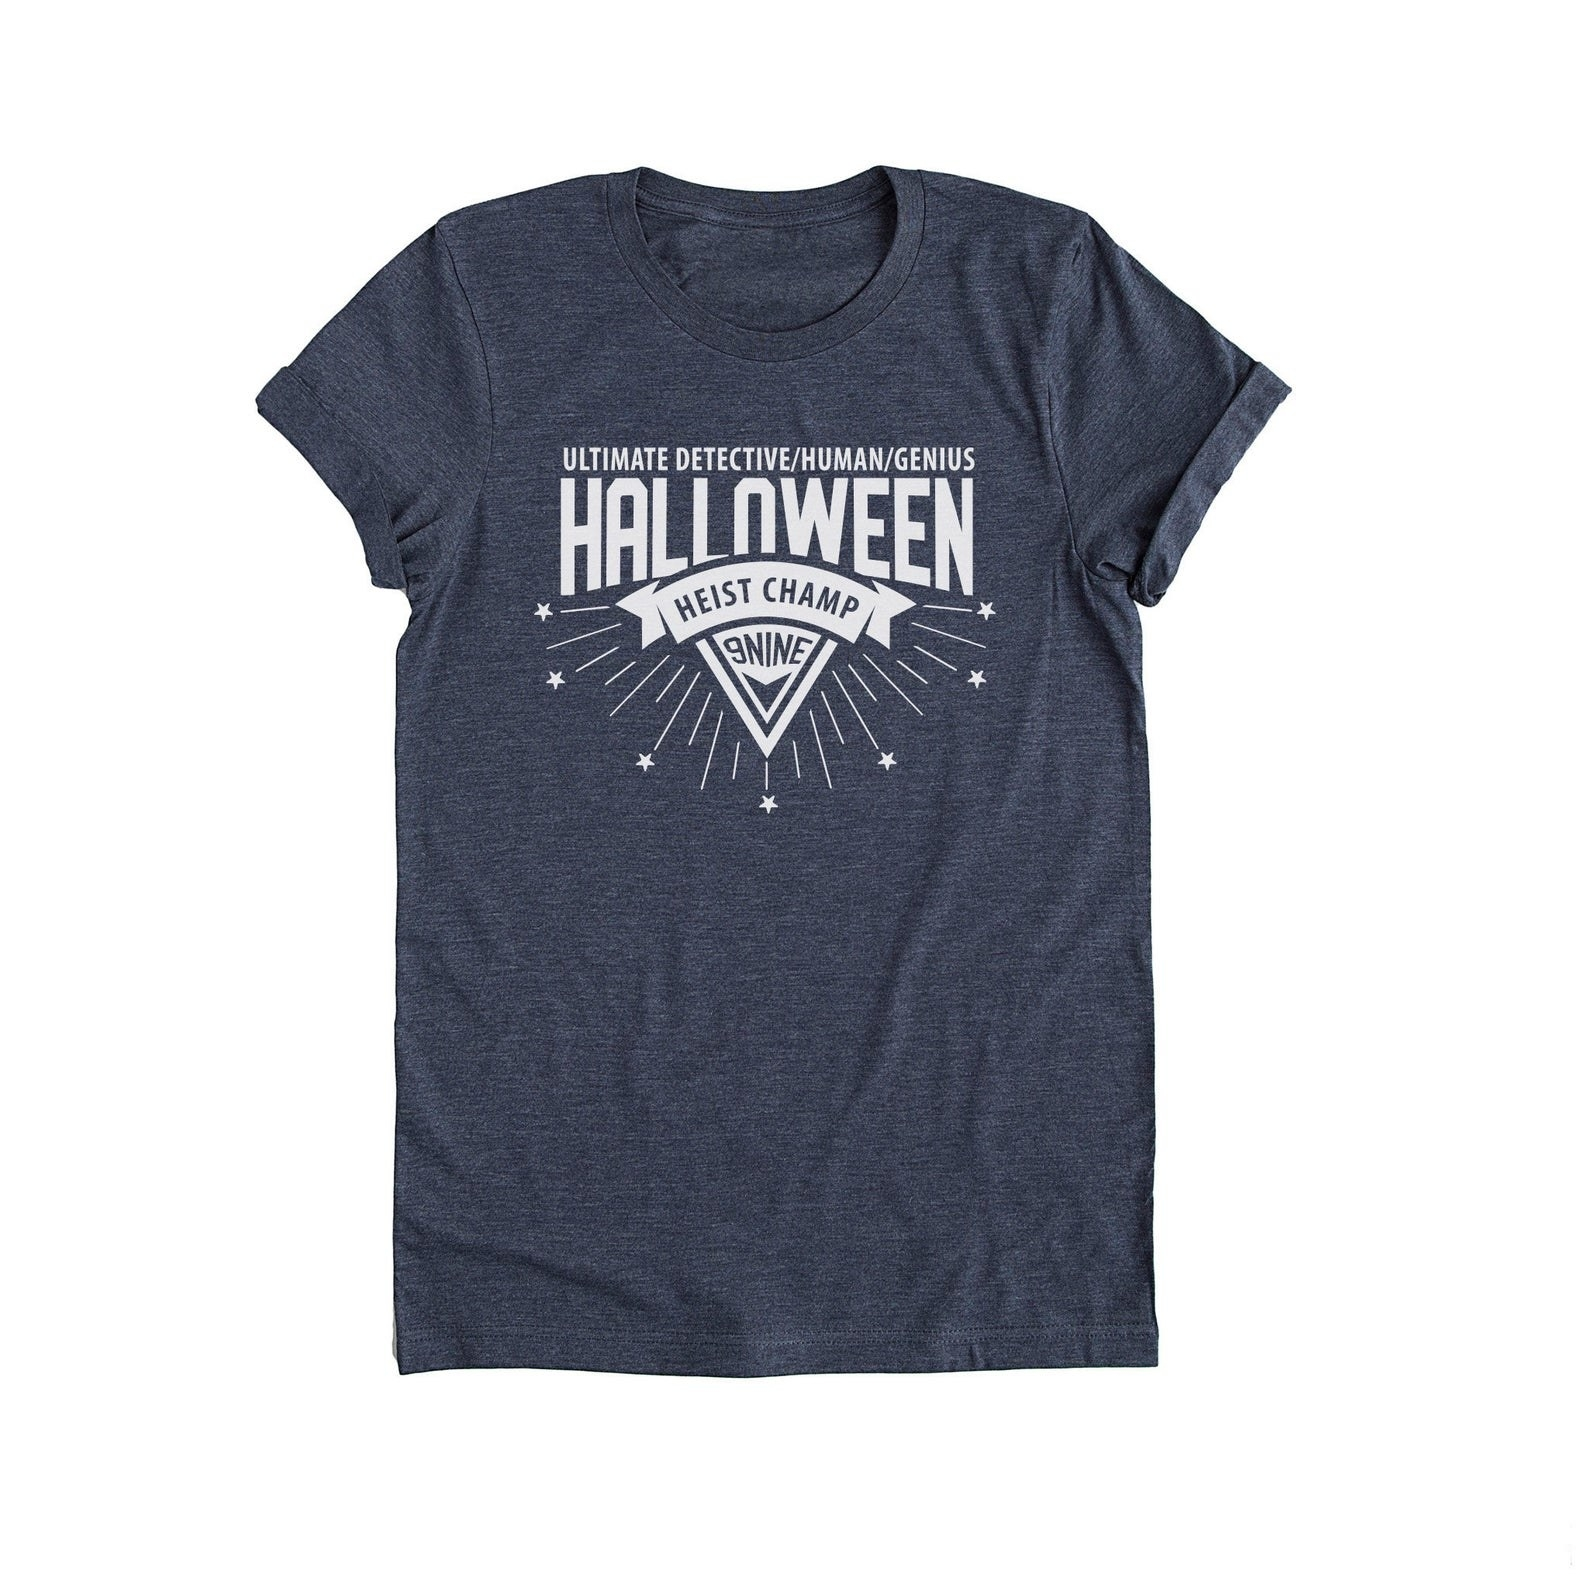 """A crewneck tee that says """"ultimate detective/human/genius"""" in small text and """"halloween heist champ"""" """"99"""" in large text"""